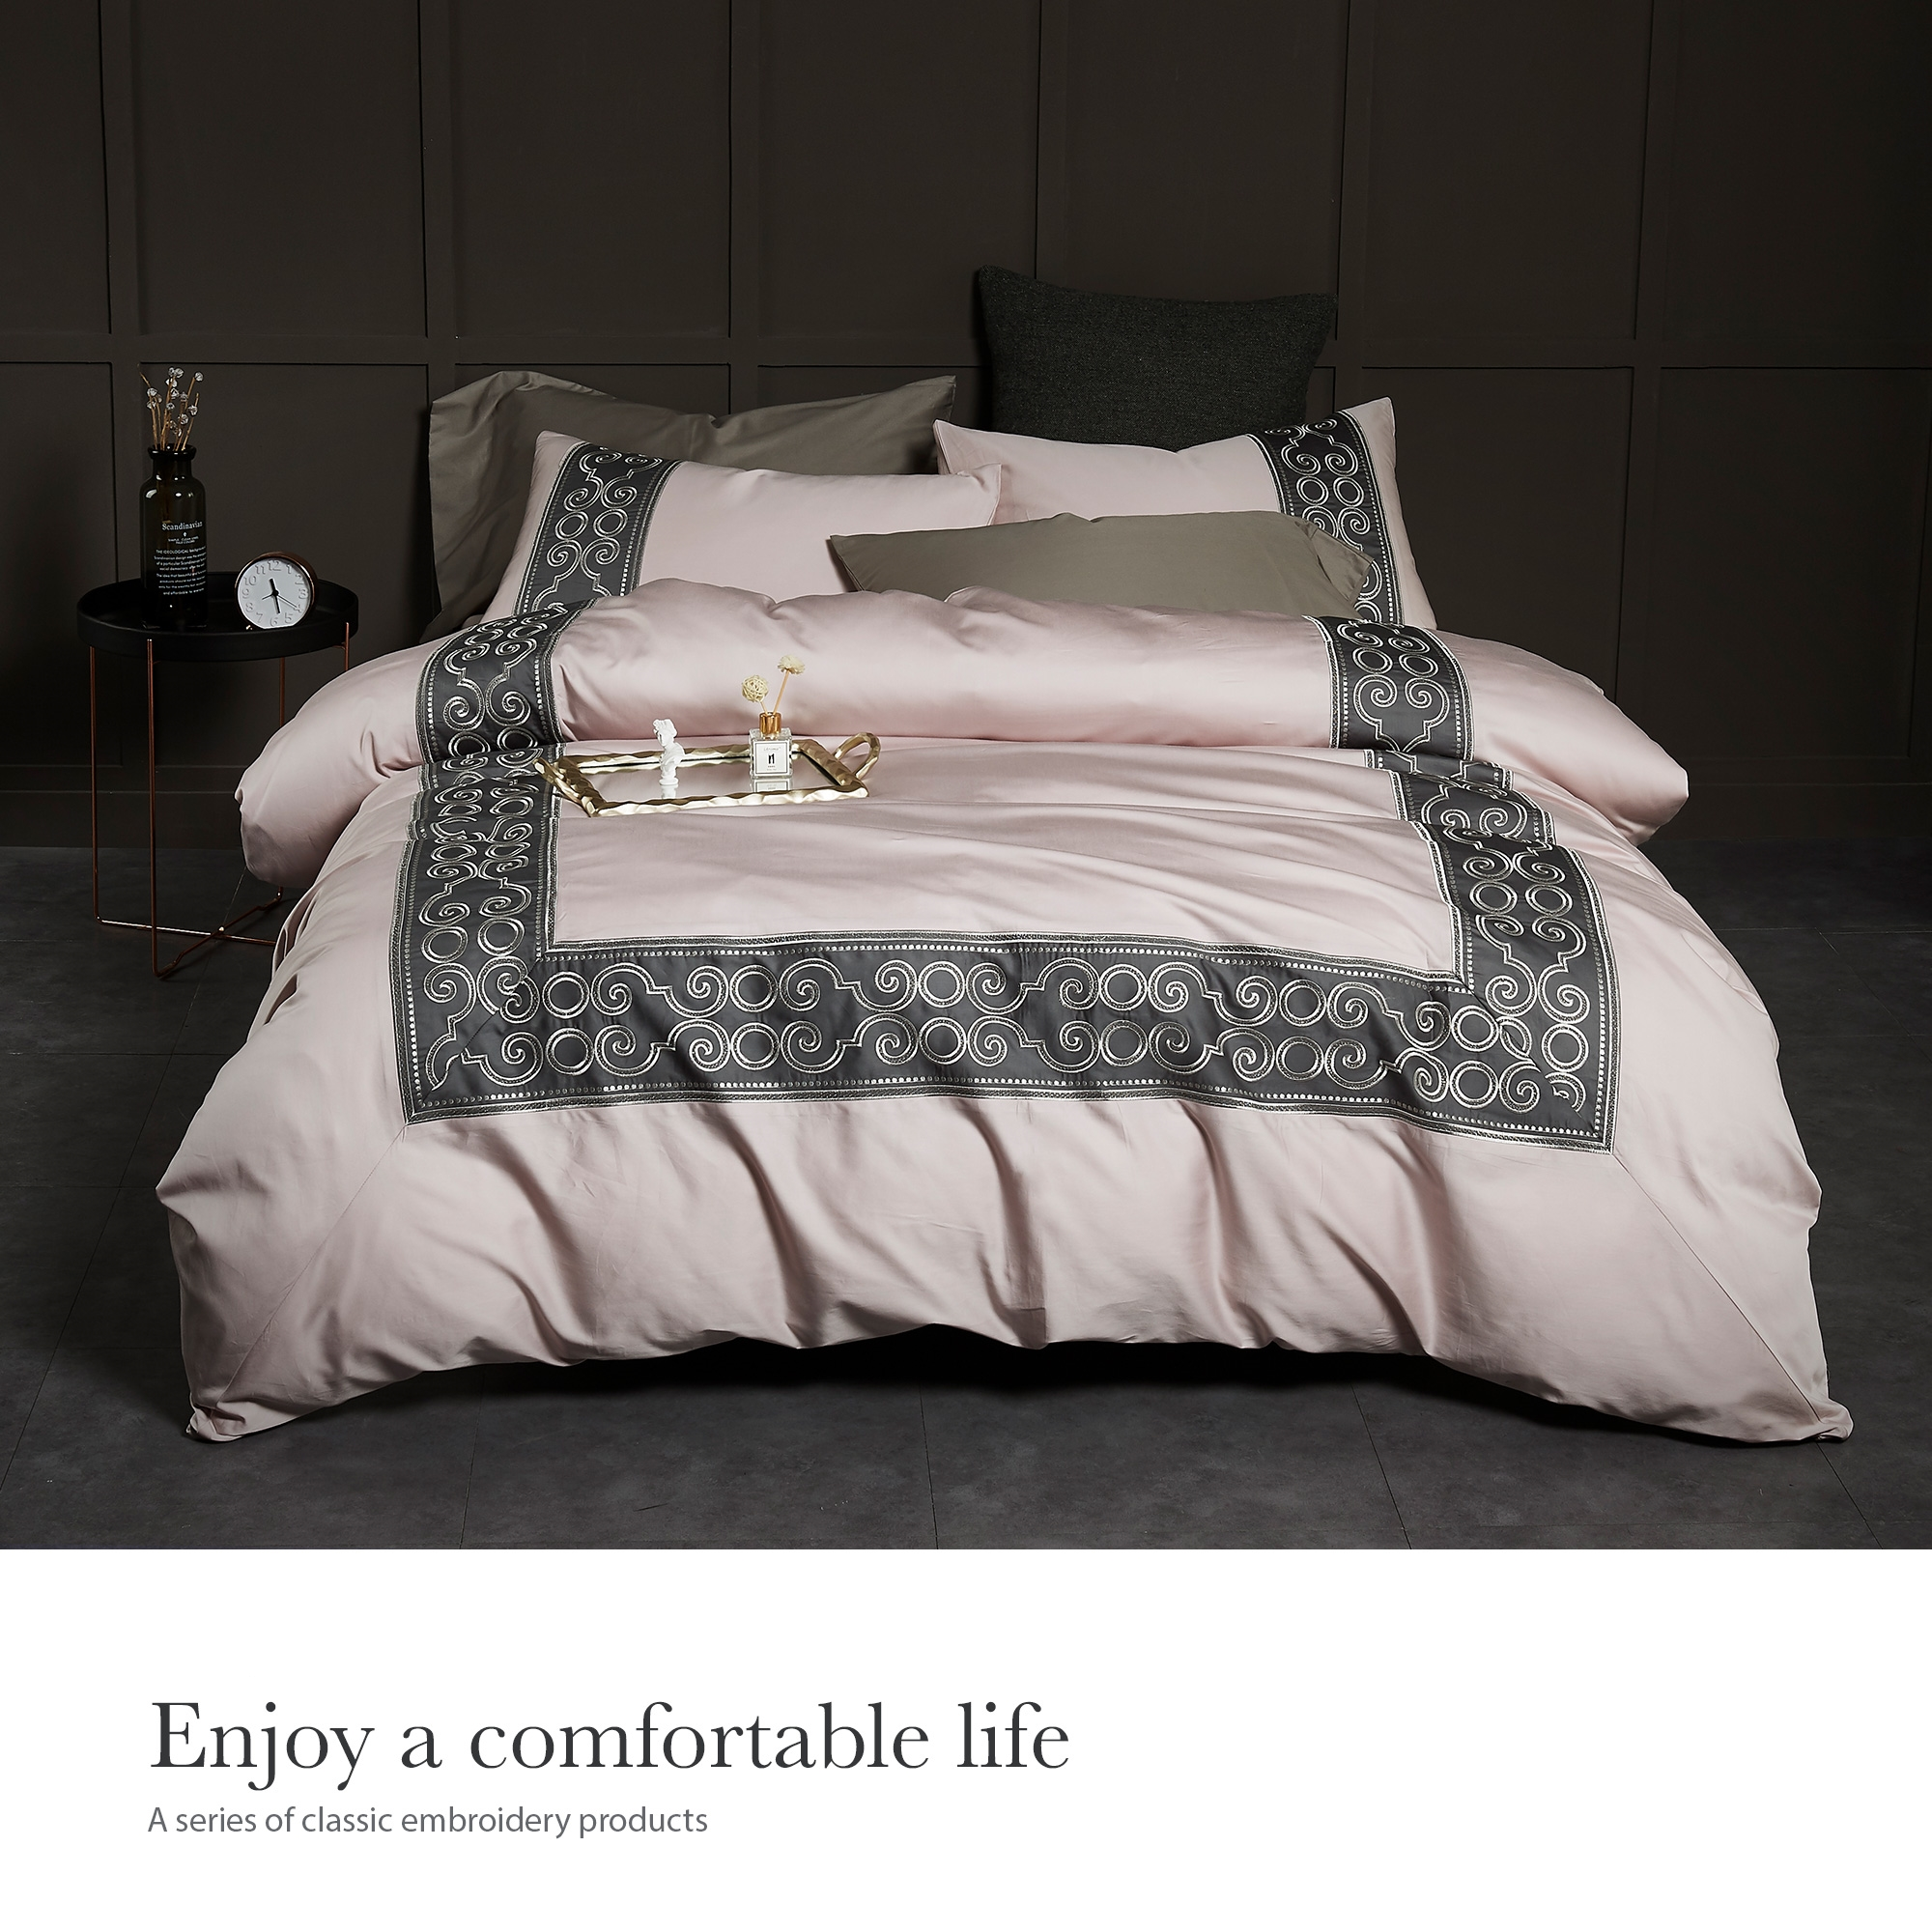 Flat Sheets 5* 400 Thread Count 100% Egyptian Cotton Fitted Sheet Flat Sheet All Uk Sizes Bright Luster Bed Linens & Sets